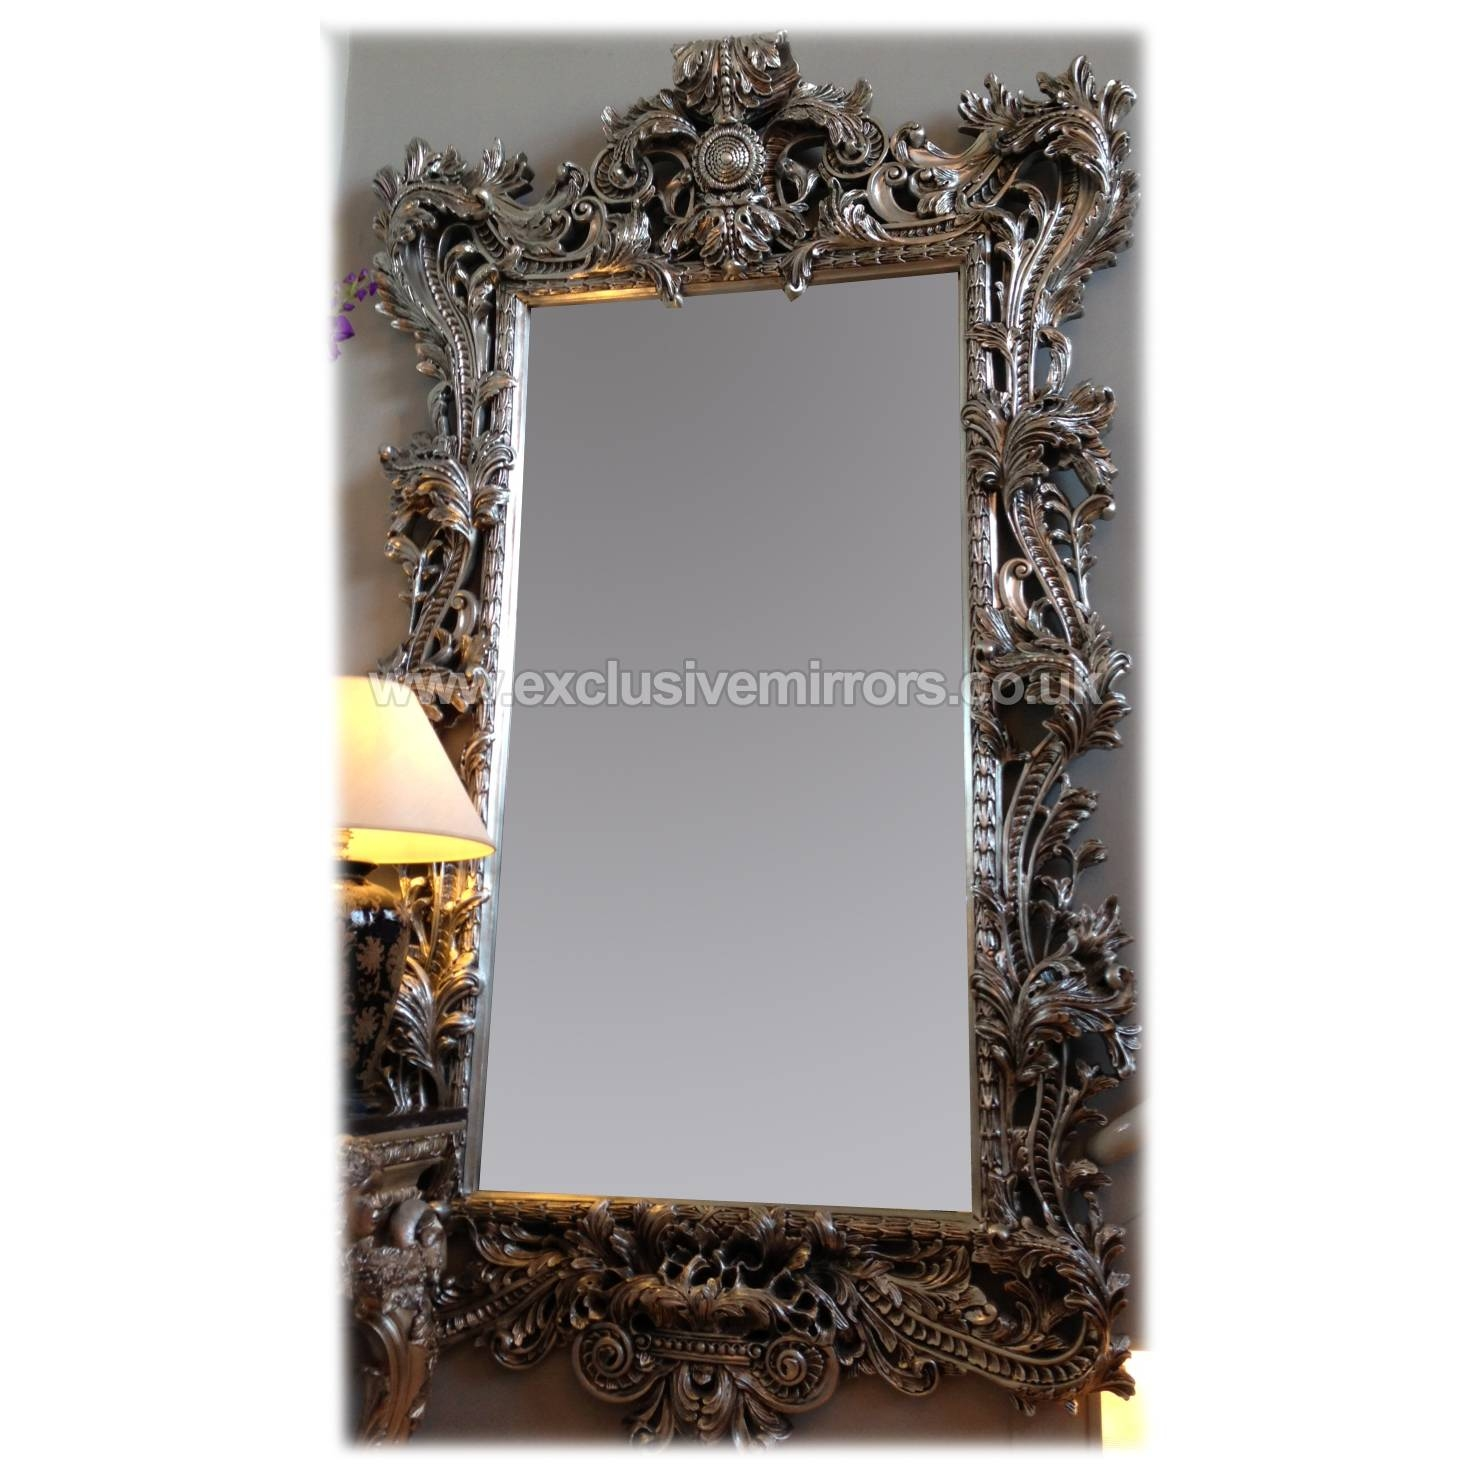 Extra Large Wall Mirrors 109 Cute Interior And Large Gold Very inside Ornate Large Mirrors (Image 8 of 25)